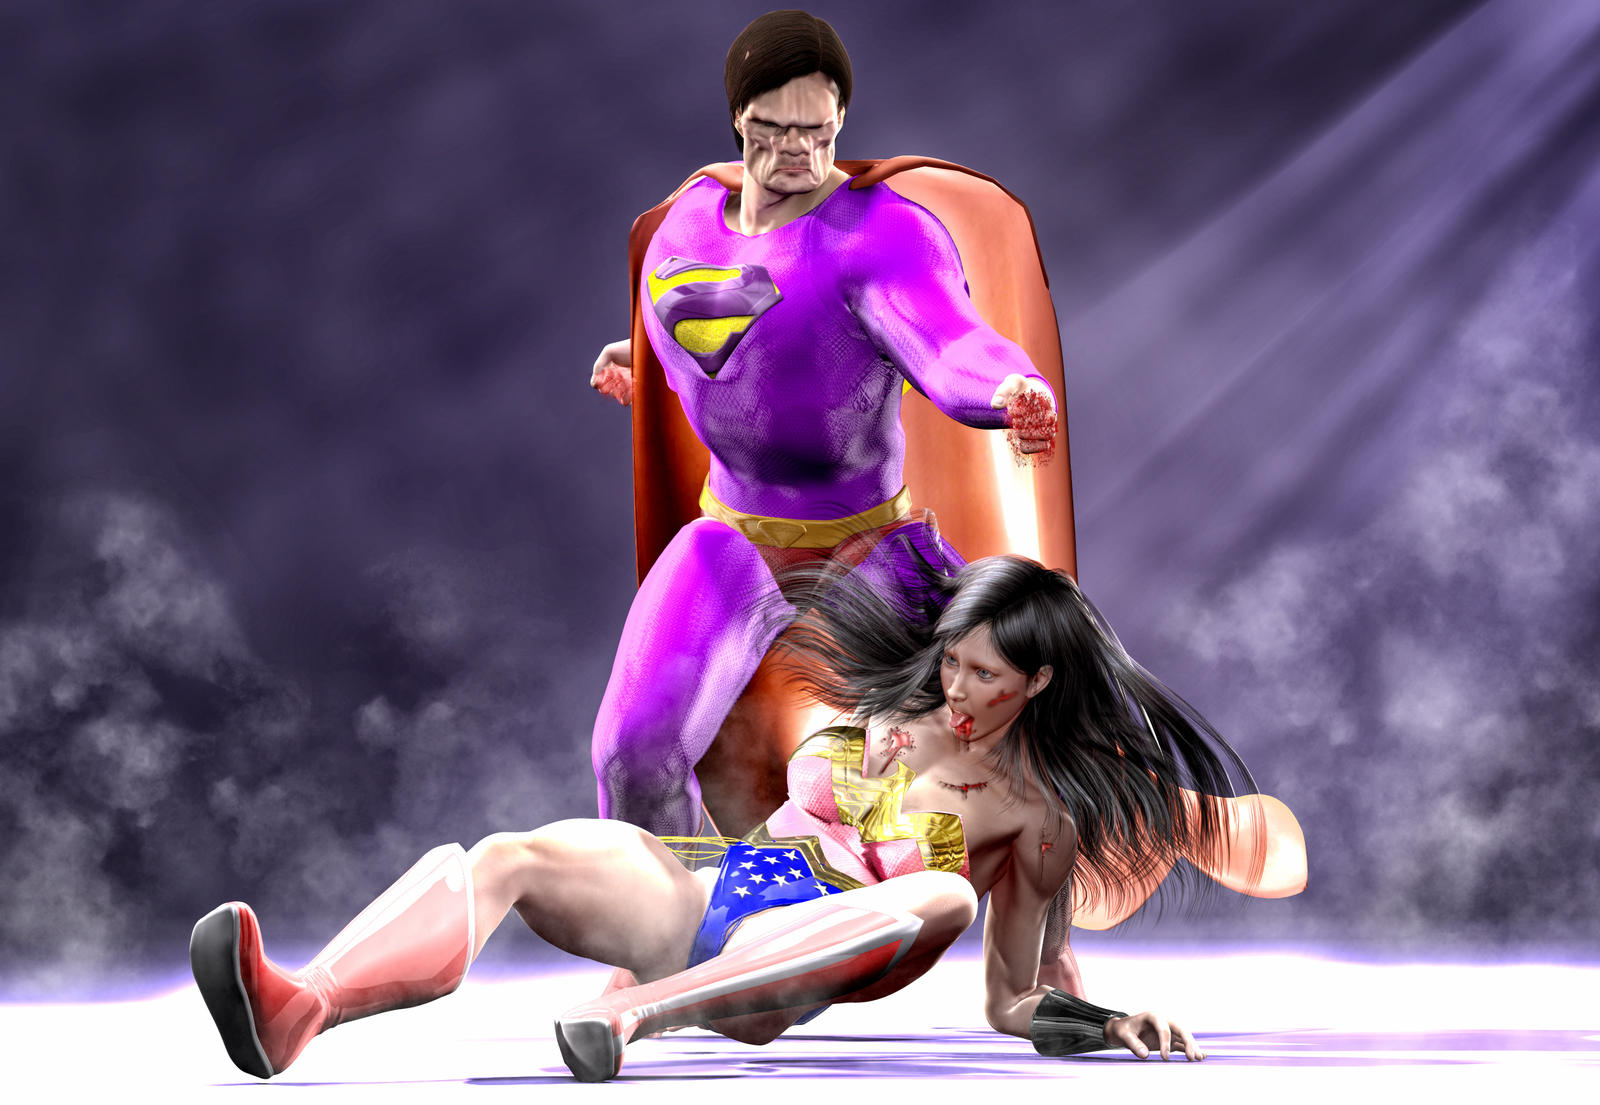 Bizarro vs Wonder Woman by hiram67